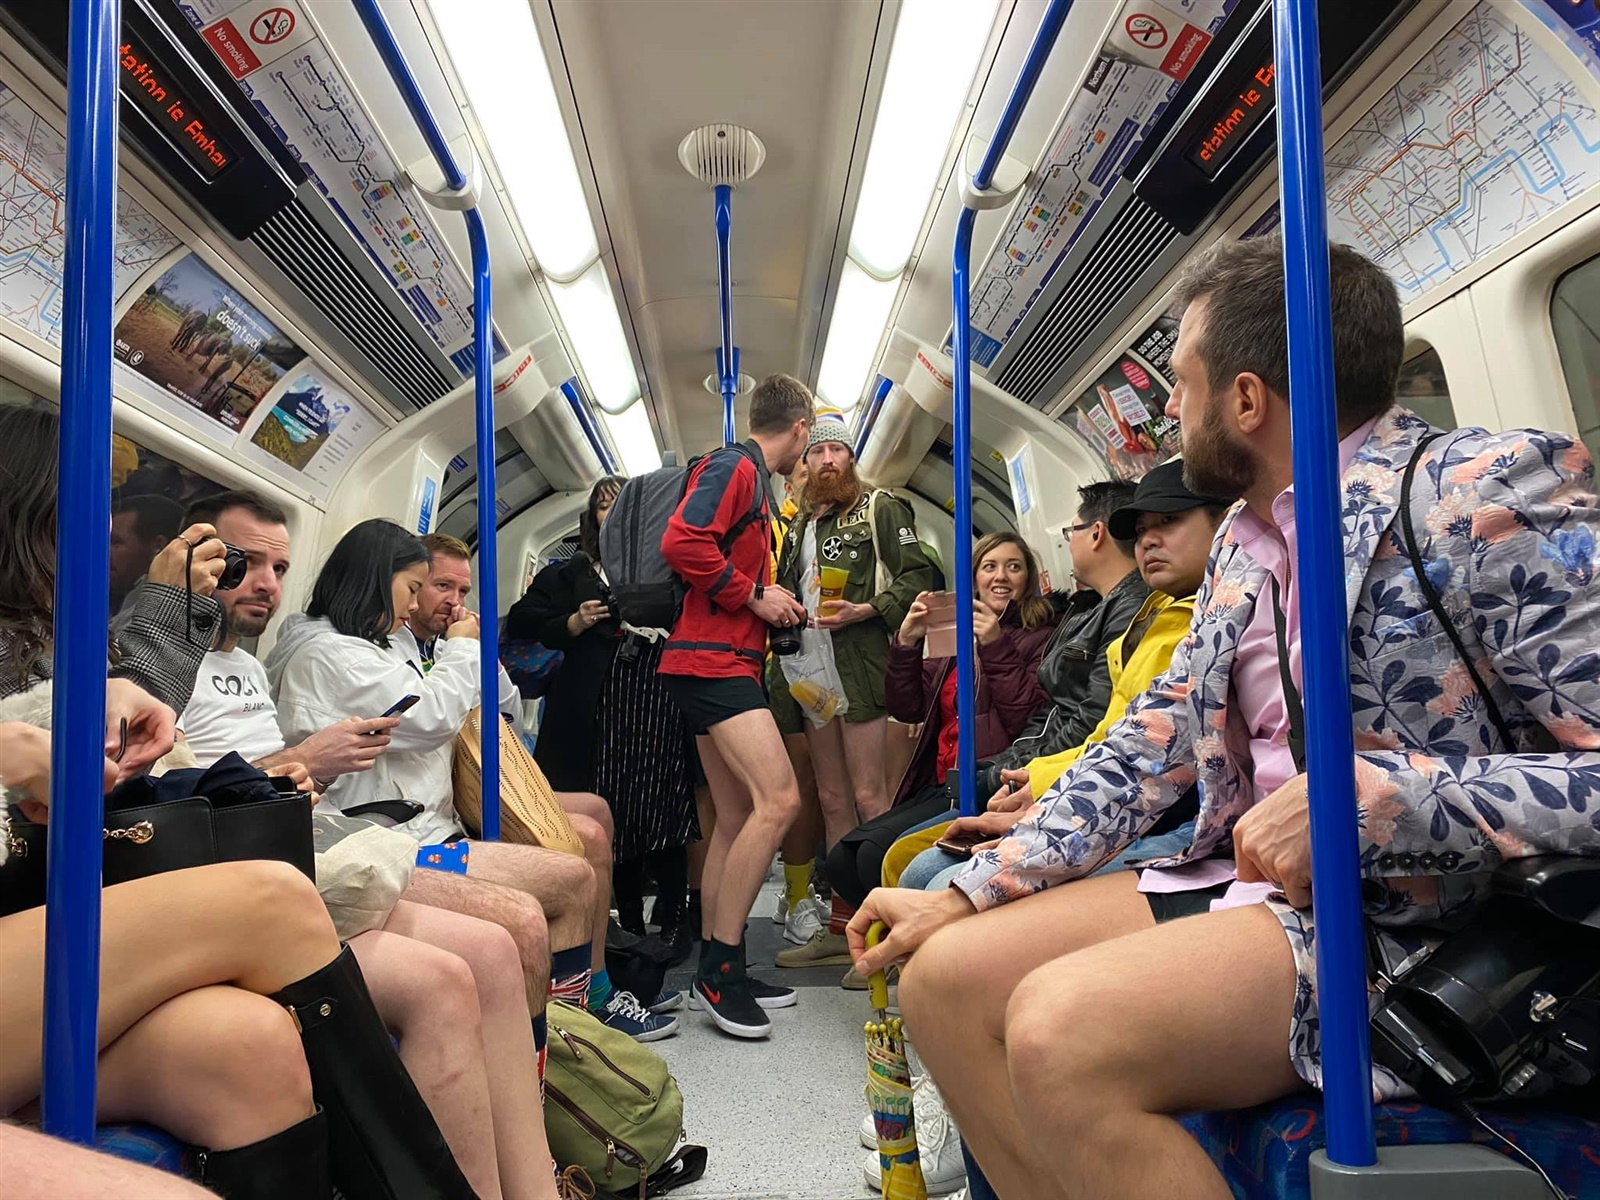 No trousers tube ride 2020